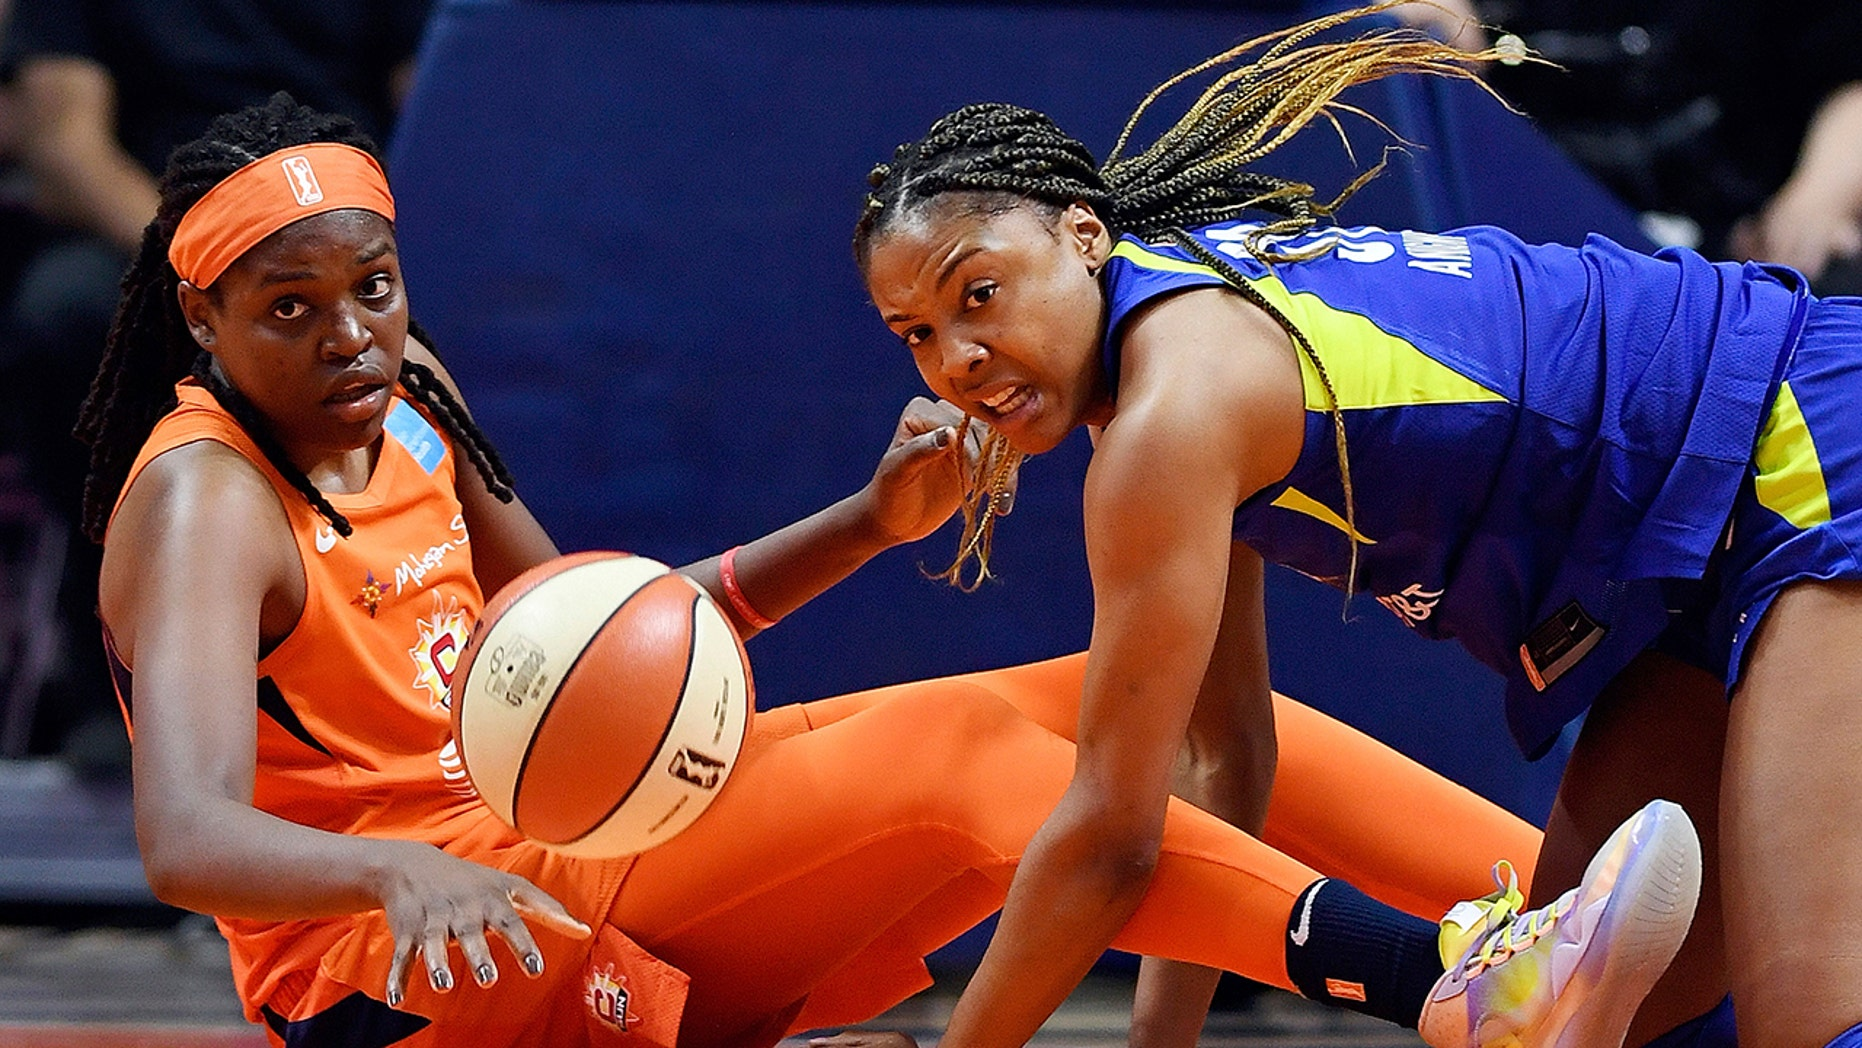 Connecticut Sun center Jonquel Jones, left, and Dallas Wings center Kristine Anigwe dive to the floor after a loose ball during a WNBA basketball game Wednesday, Sept. 4, 2019, in Uncasville, Conn. (Sean D. Elliot/The Day via AP)